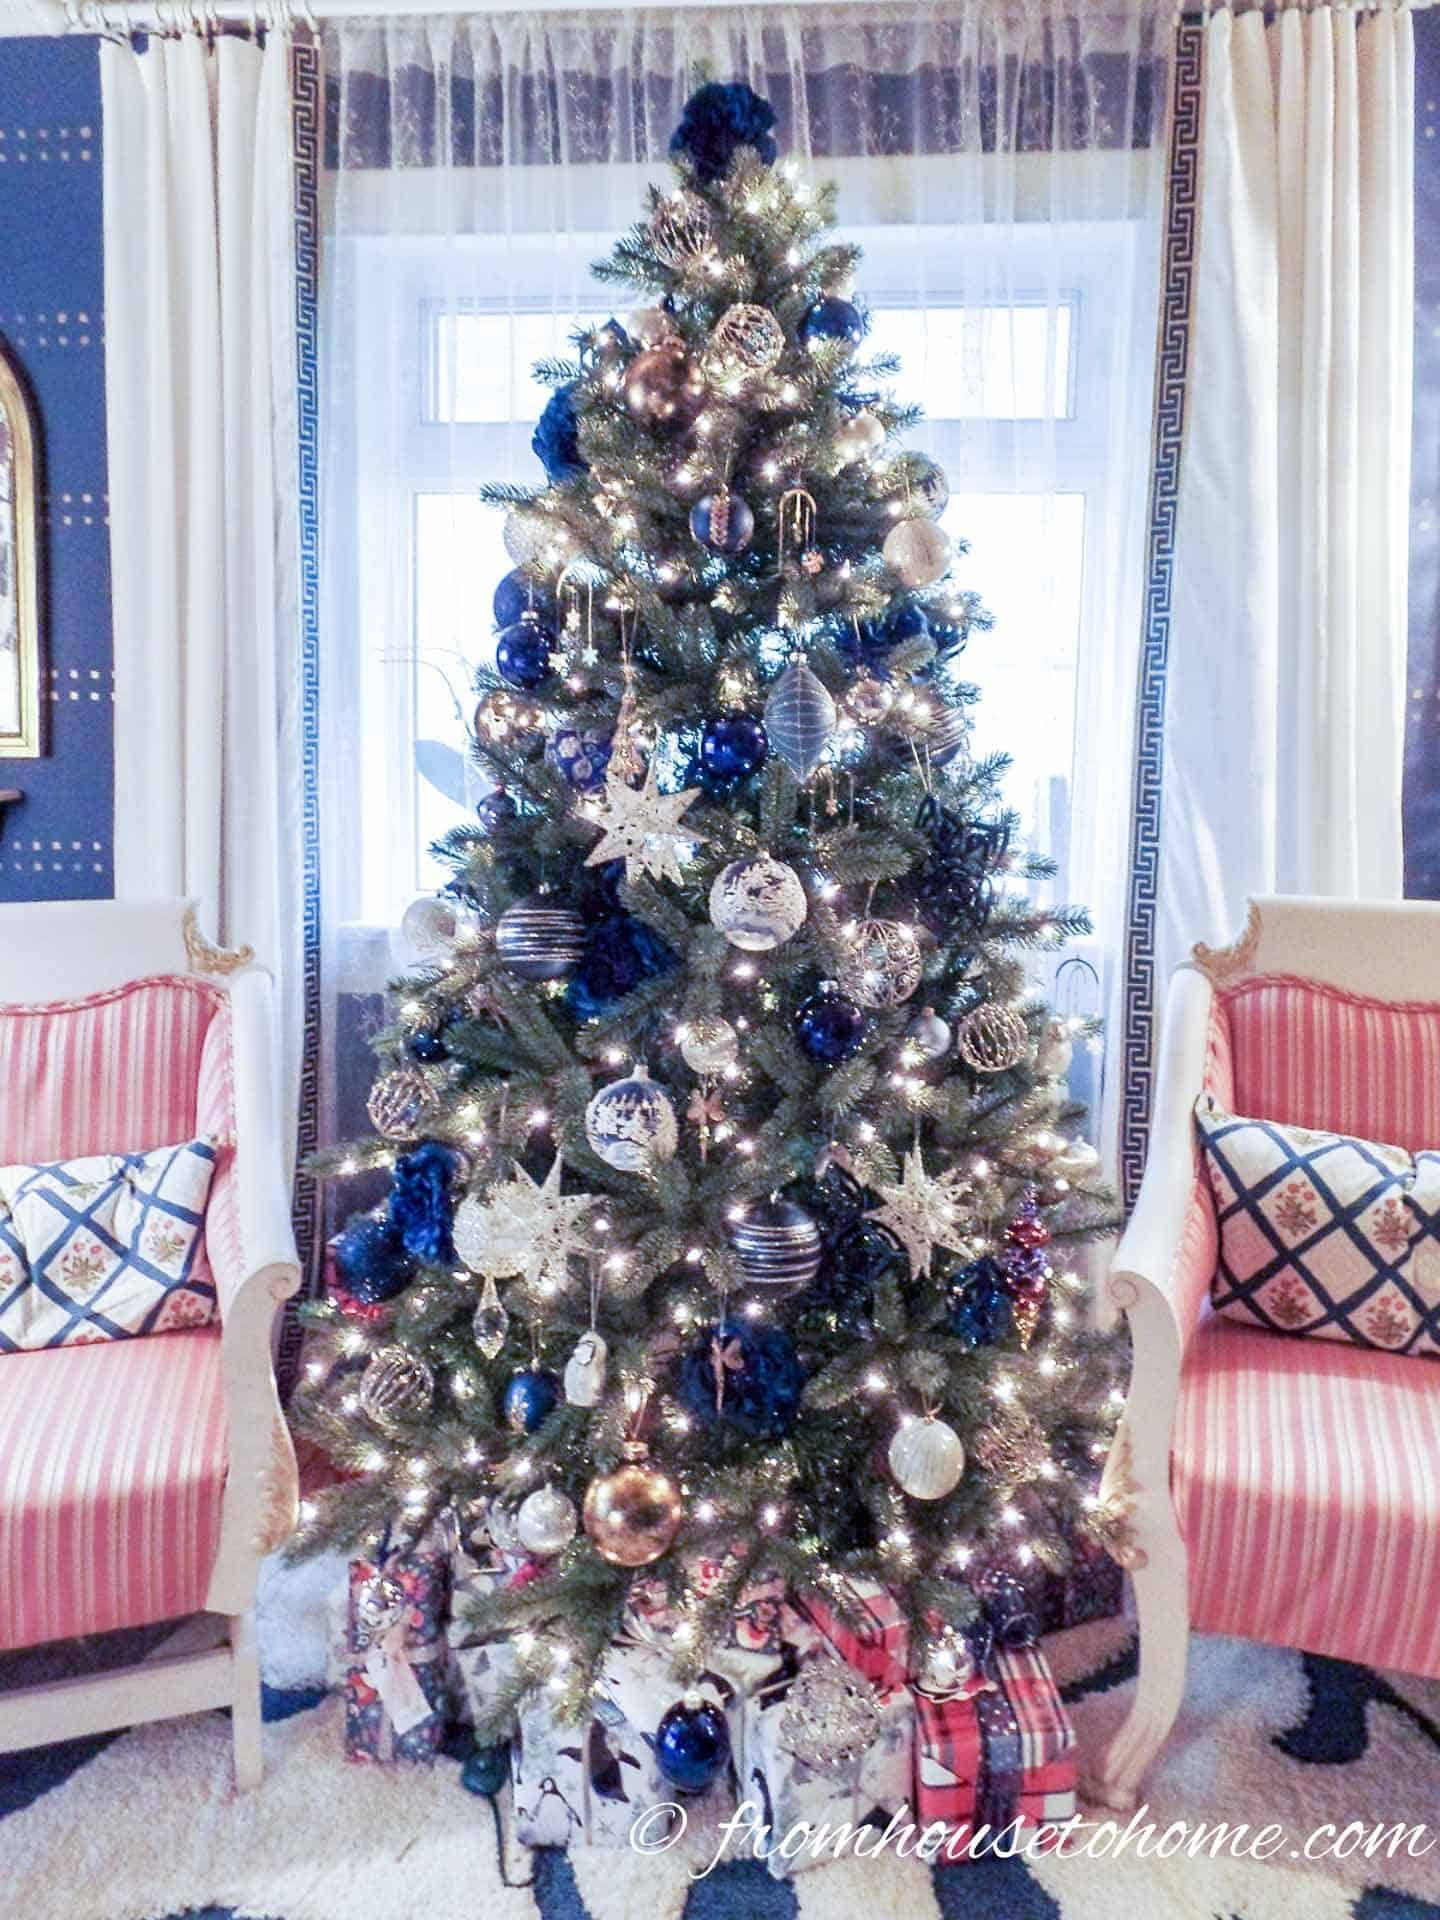 15 Elegant Christmas Tree Decorating Ideas Glam Christmas Tree Blue Christmas Tree Decorations Elegant Christmas Trees